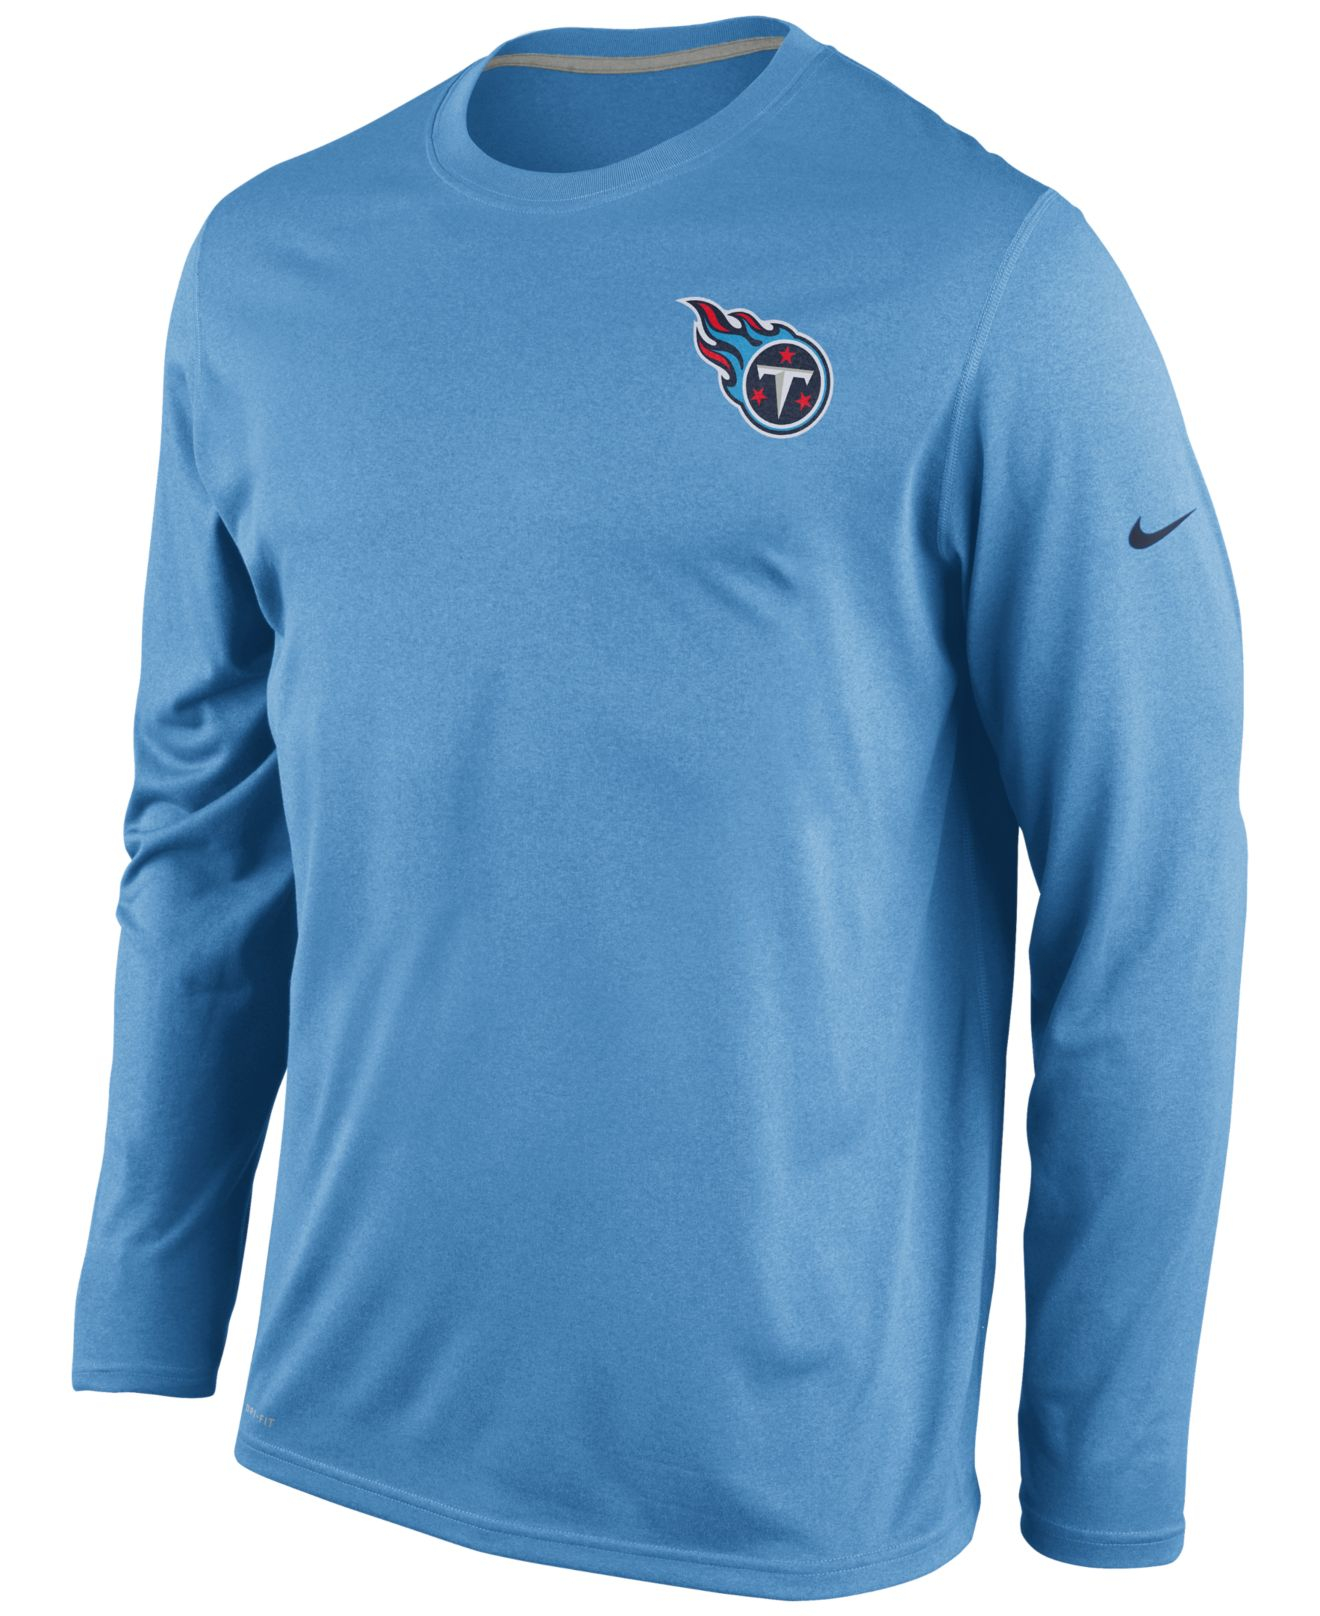 ... Nike MenS Long-Sleeve Tennessee Titans Dri-Fit T-Shirt in Bl ... b907e2f35